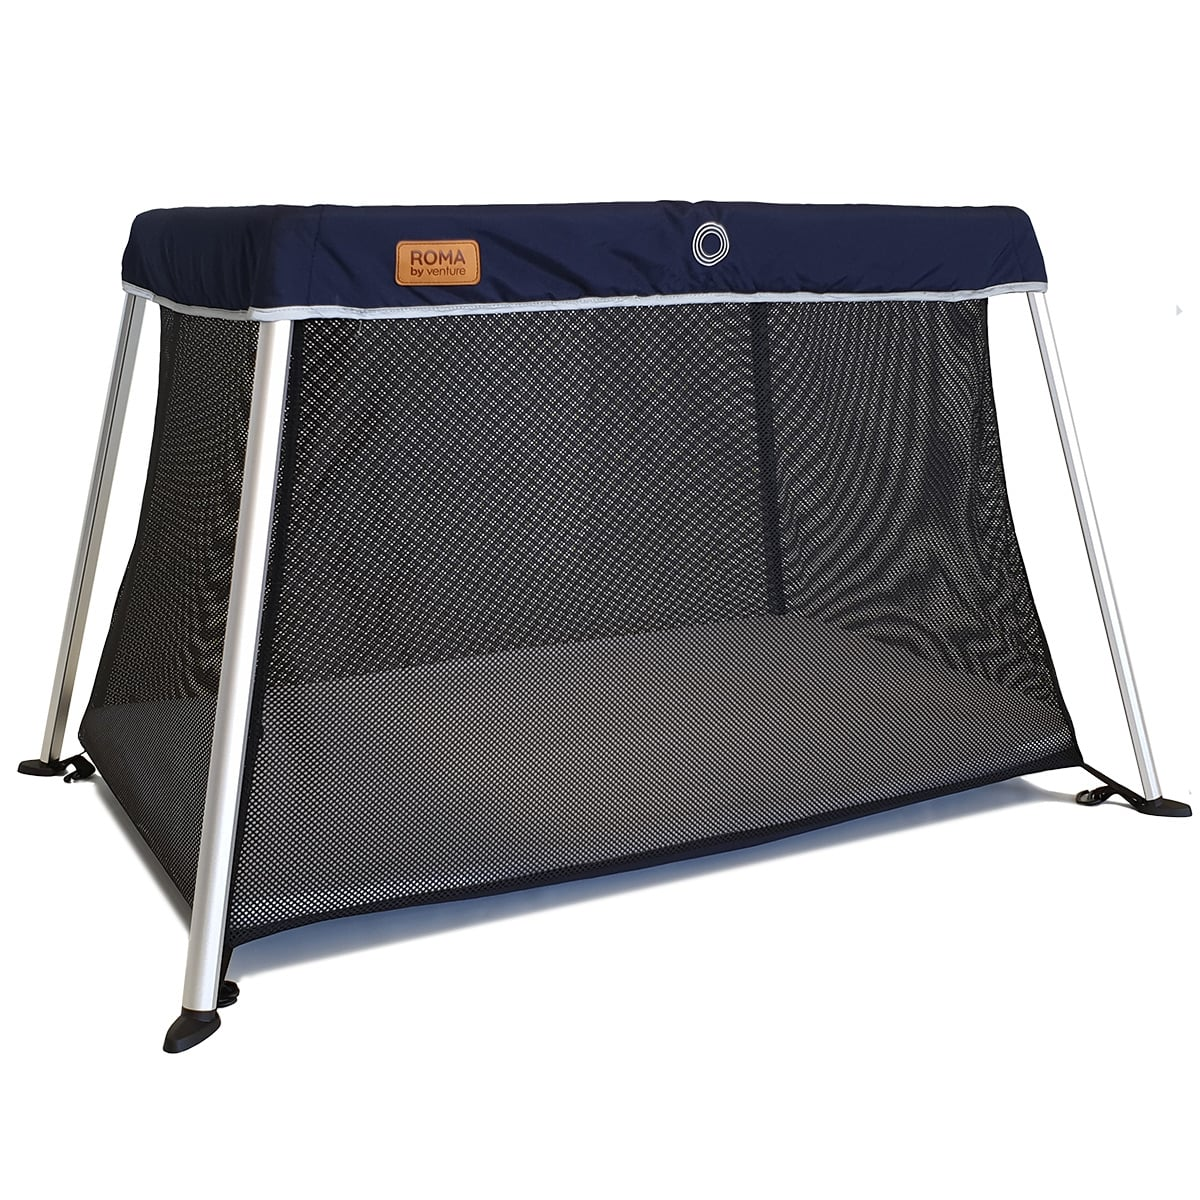 The Venture Roma travel cot in blue